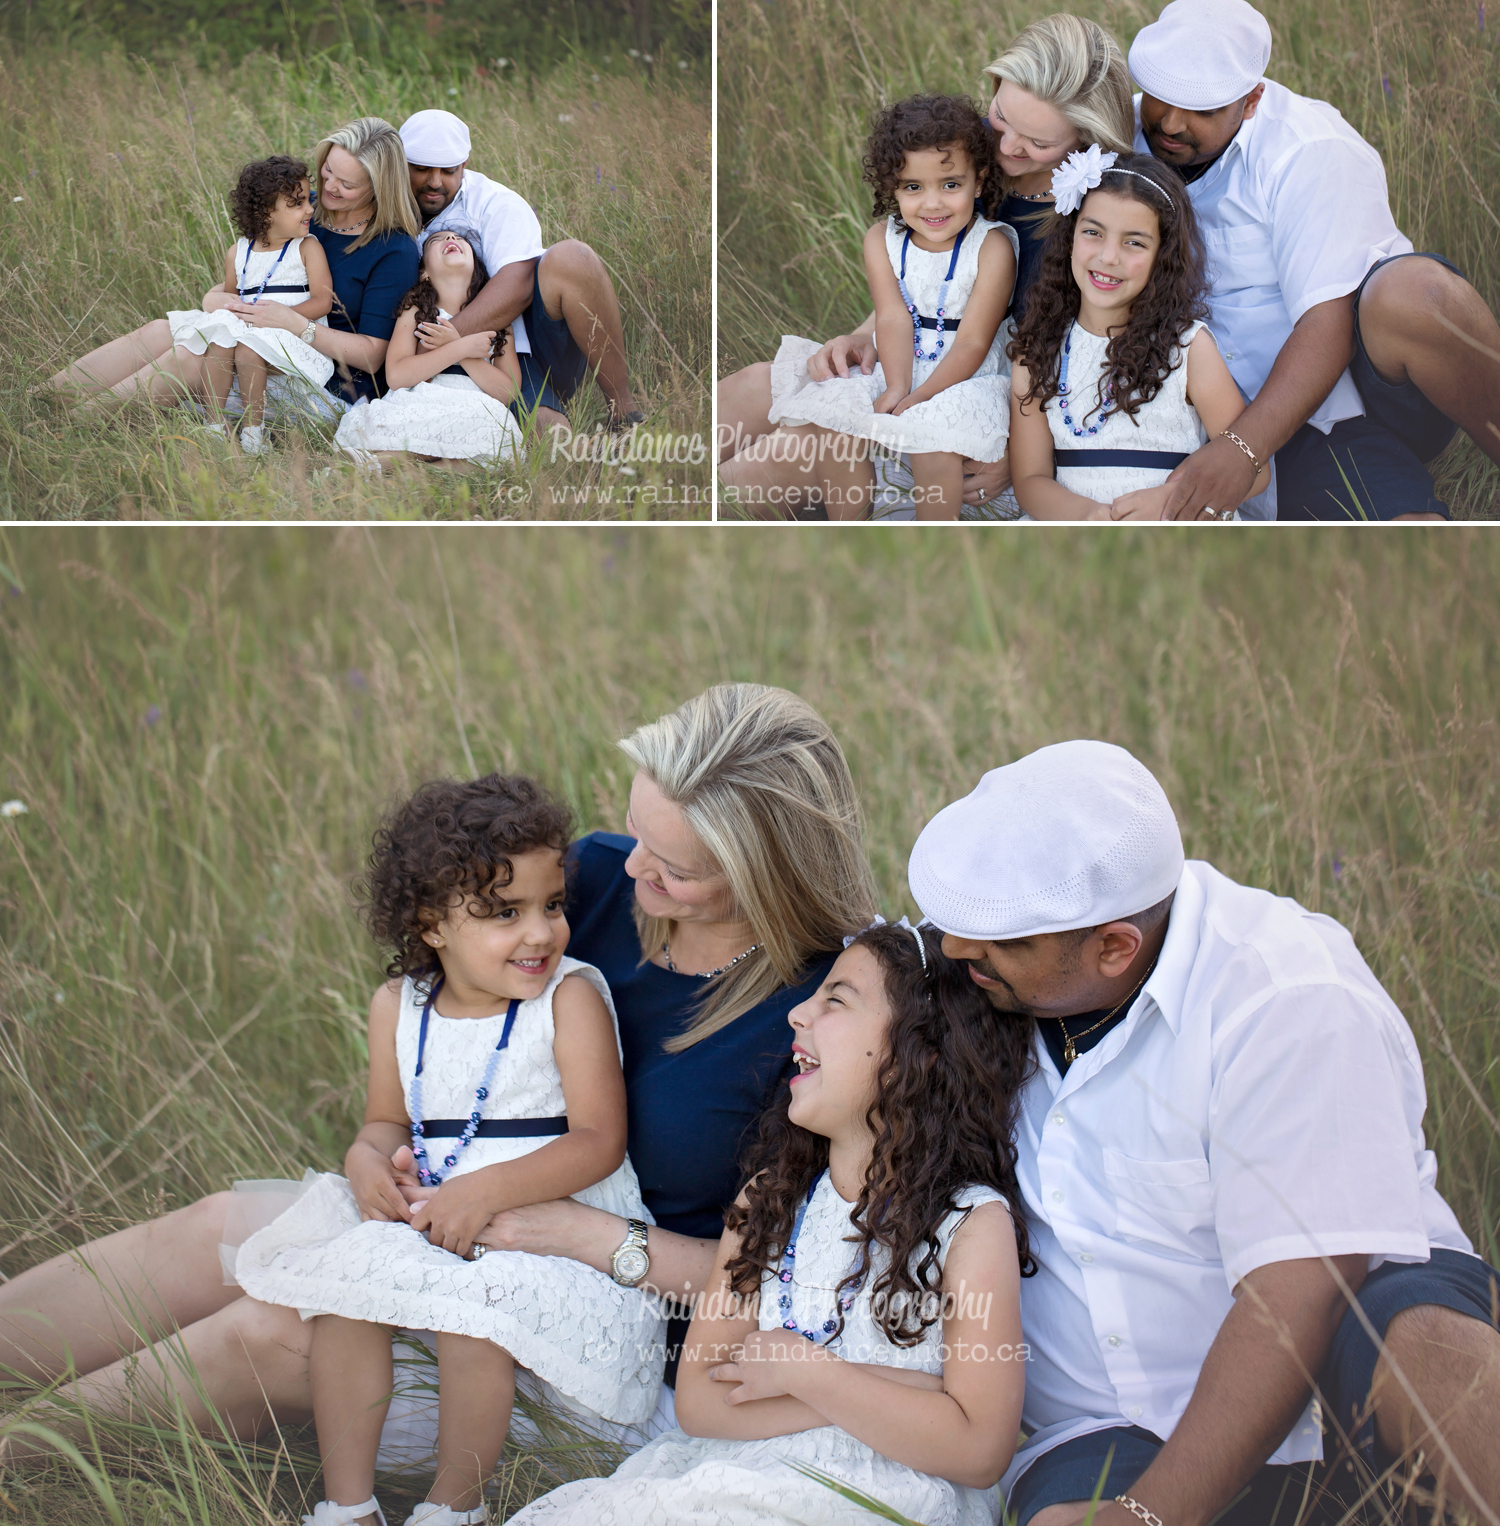 Kalimootoo - Barrie Family and Child Photographer 4